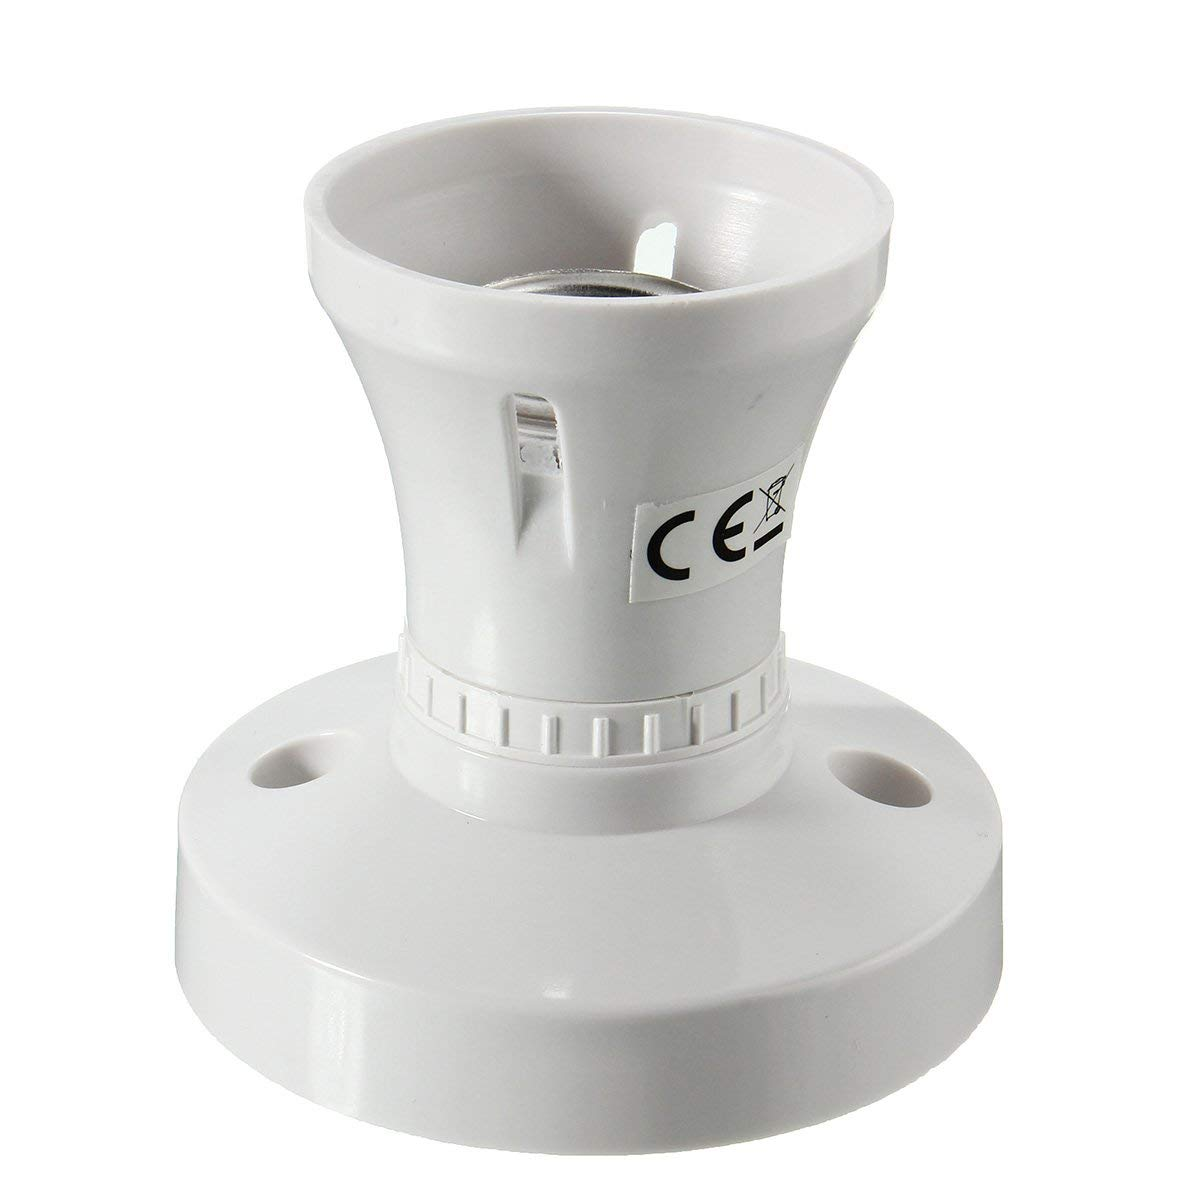 Wincom Dishman LIGHTING ACCESSORIES E27 Plastic Cap Socket Light Bulb Lamp Holder Base Fitting Adapter AC110-250V